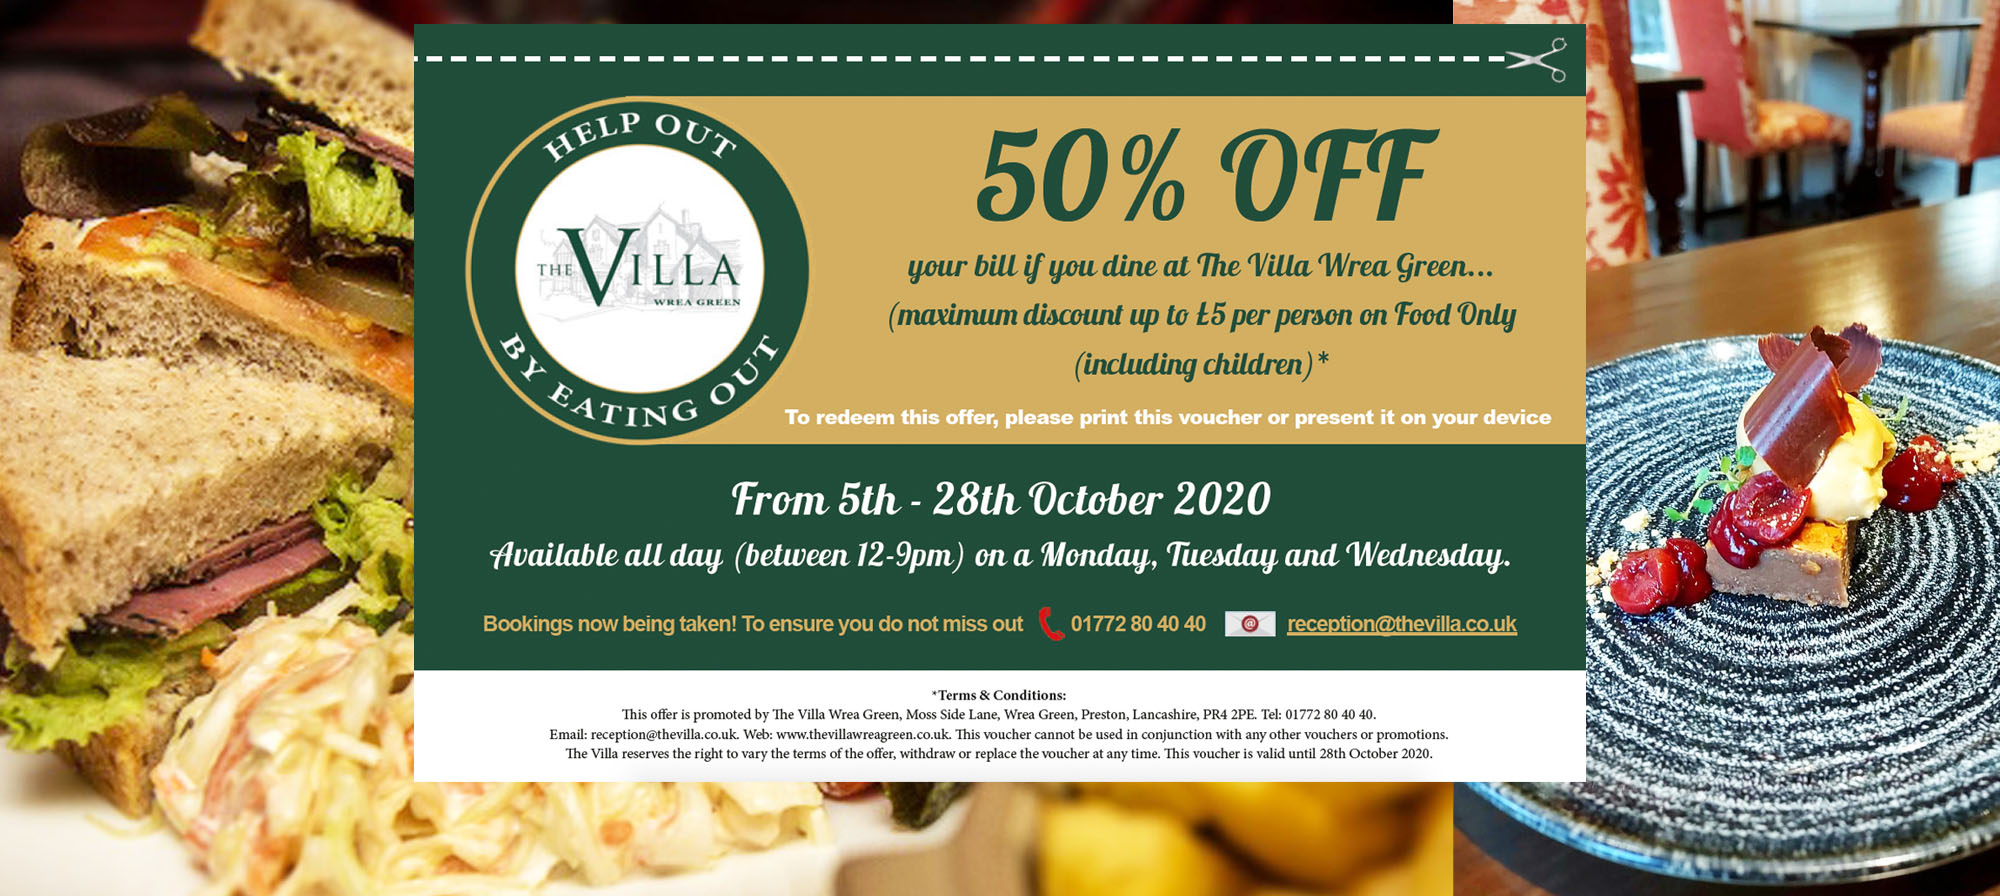 50% off eat to help out october preston lancashire offer